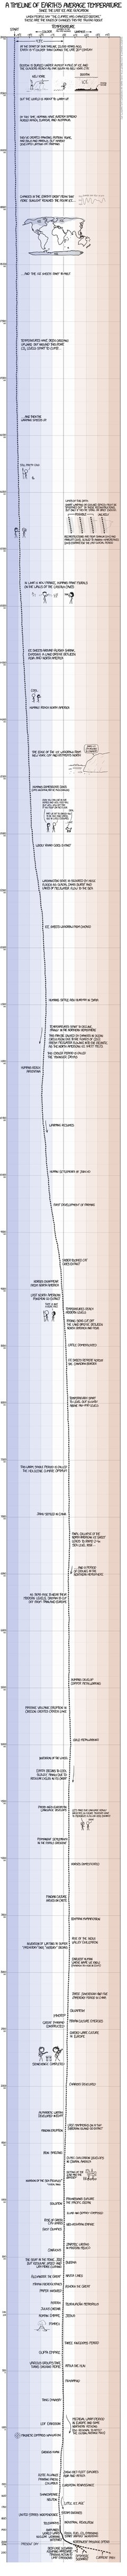 earth_temperature_timeline.png